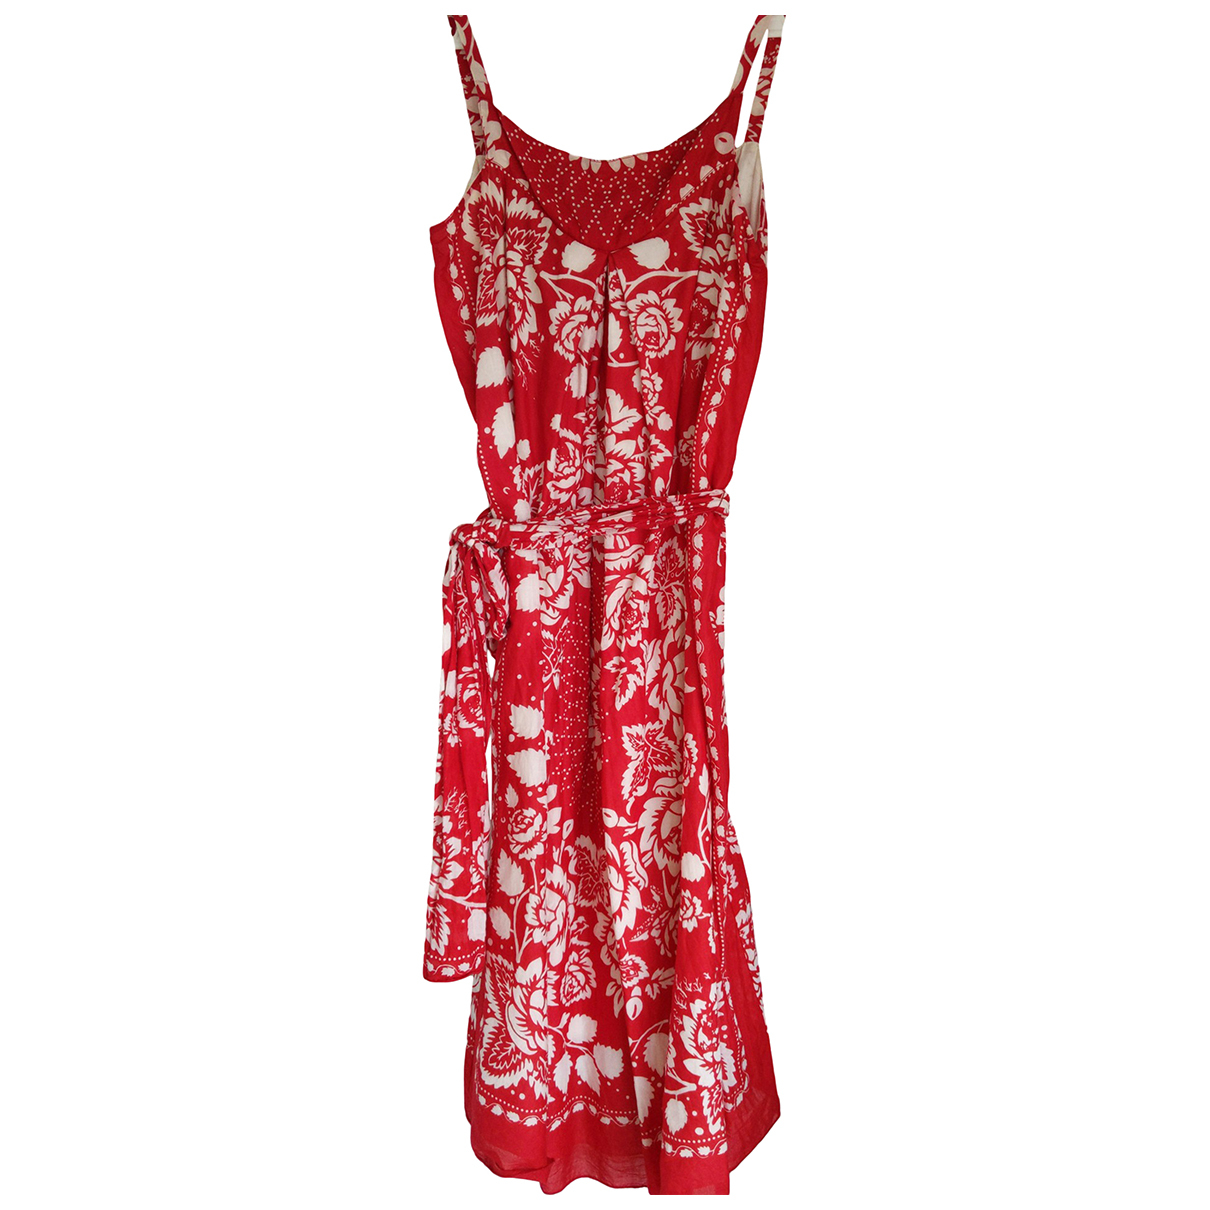 Anna Sui N Red Cotton dress for Women 6 US